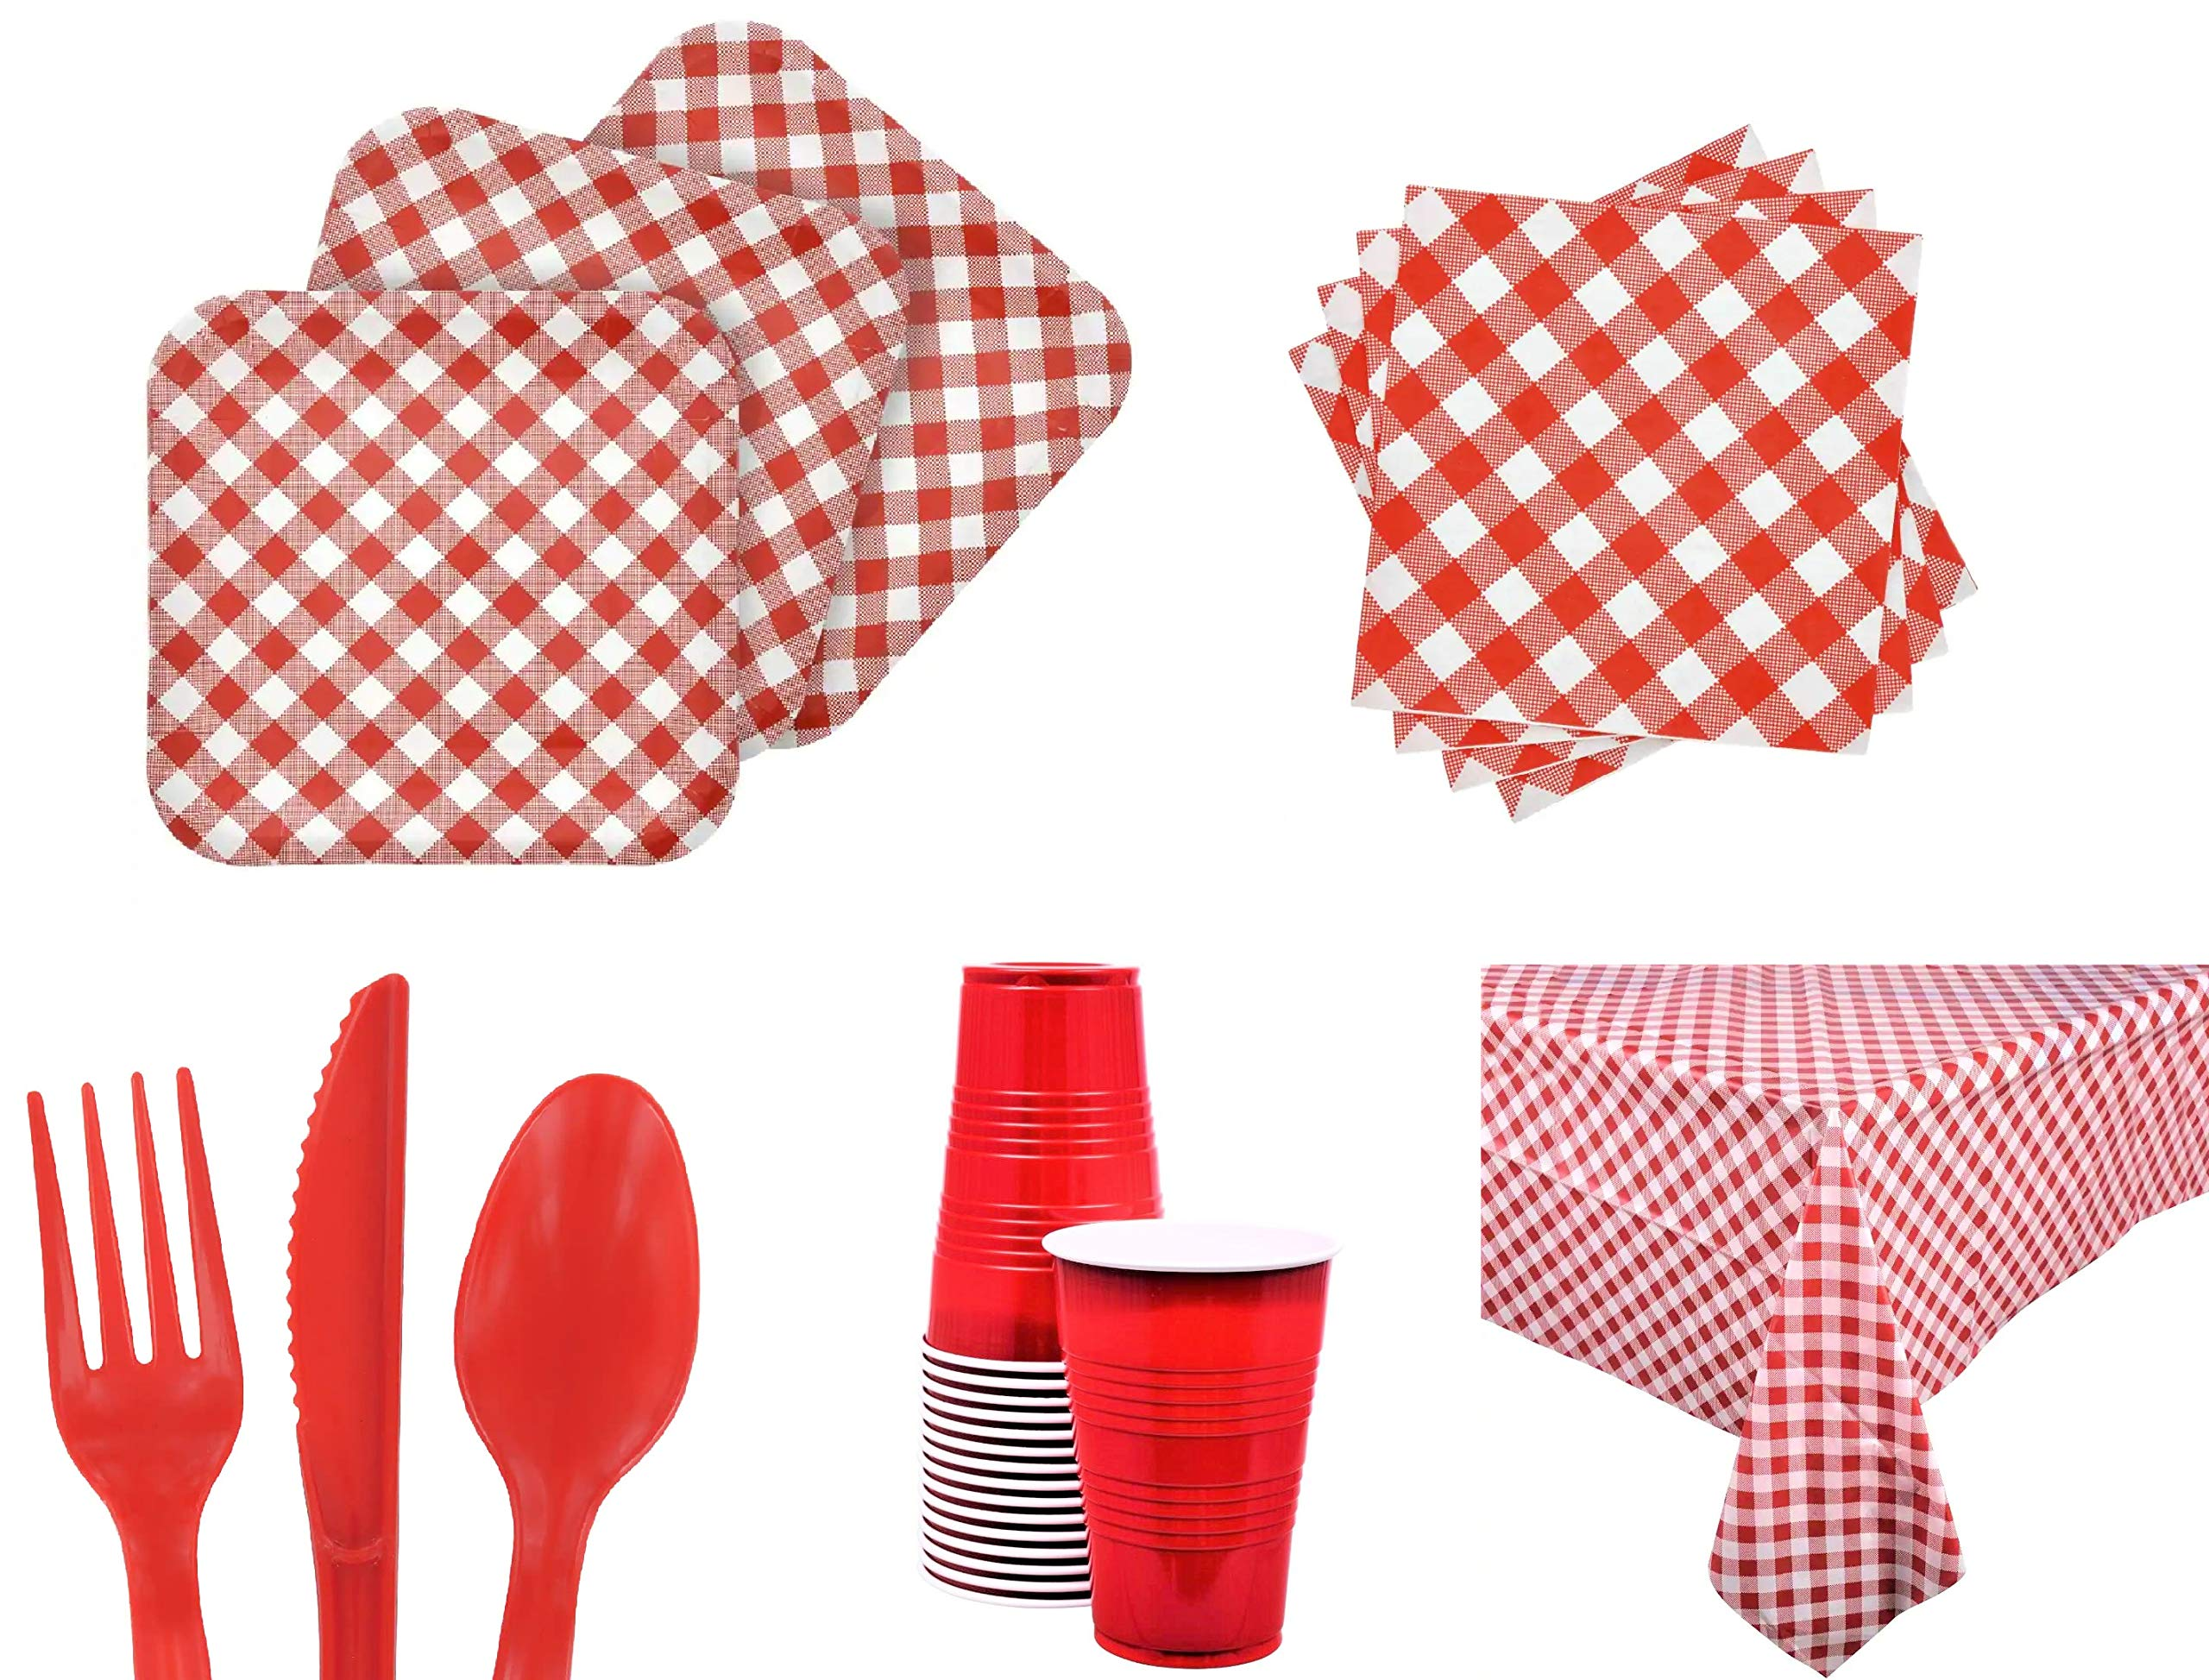 Red Gingham Picnic BBQ Summer Festivities Disposable Party Supplies Set - Serves 28 - with 40 Gingham Napkins, 28 Gingham Plates, 32 (16oz) Red Cups, 96-ct Red Utensils Set, 2 Gingham Table Covers